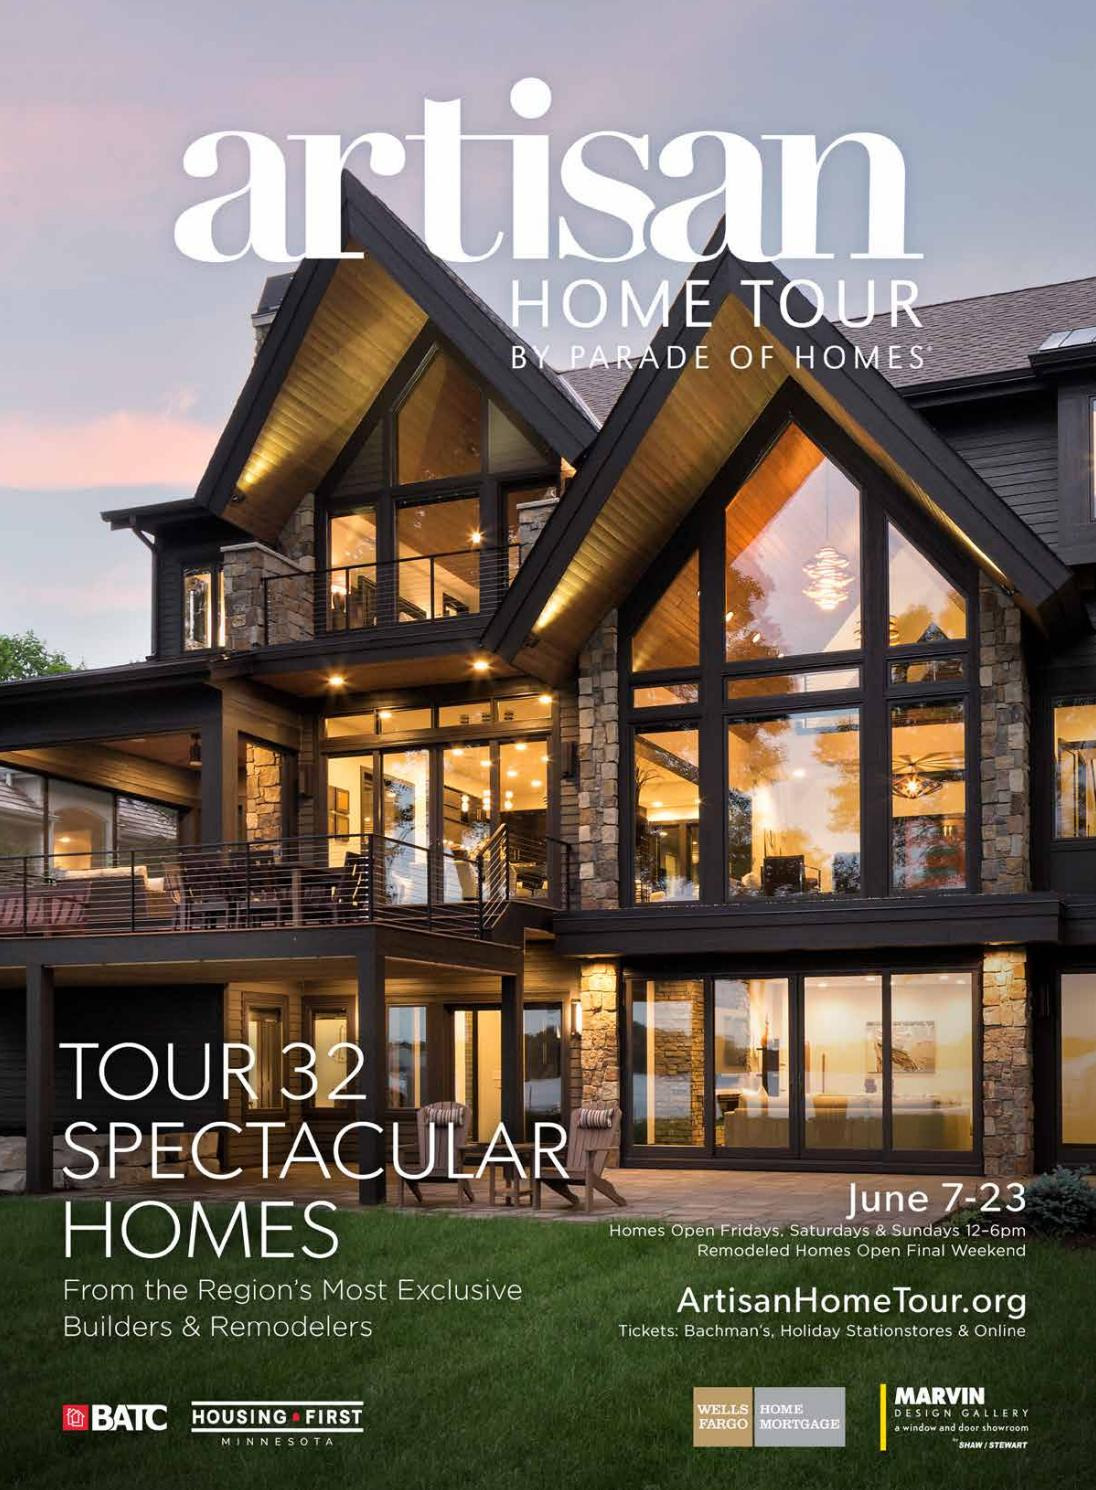 Wonderful Houses Around the World Unique Artisan Home tour by Parade Of Homes 2019 Guidebook by